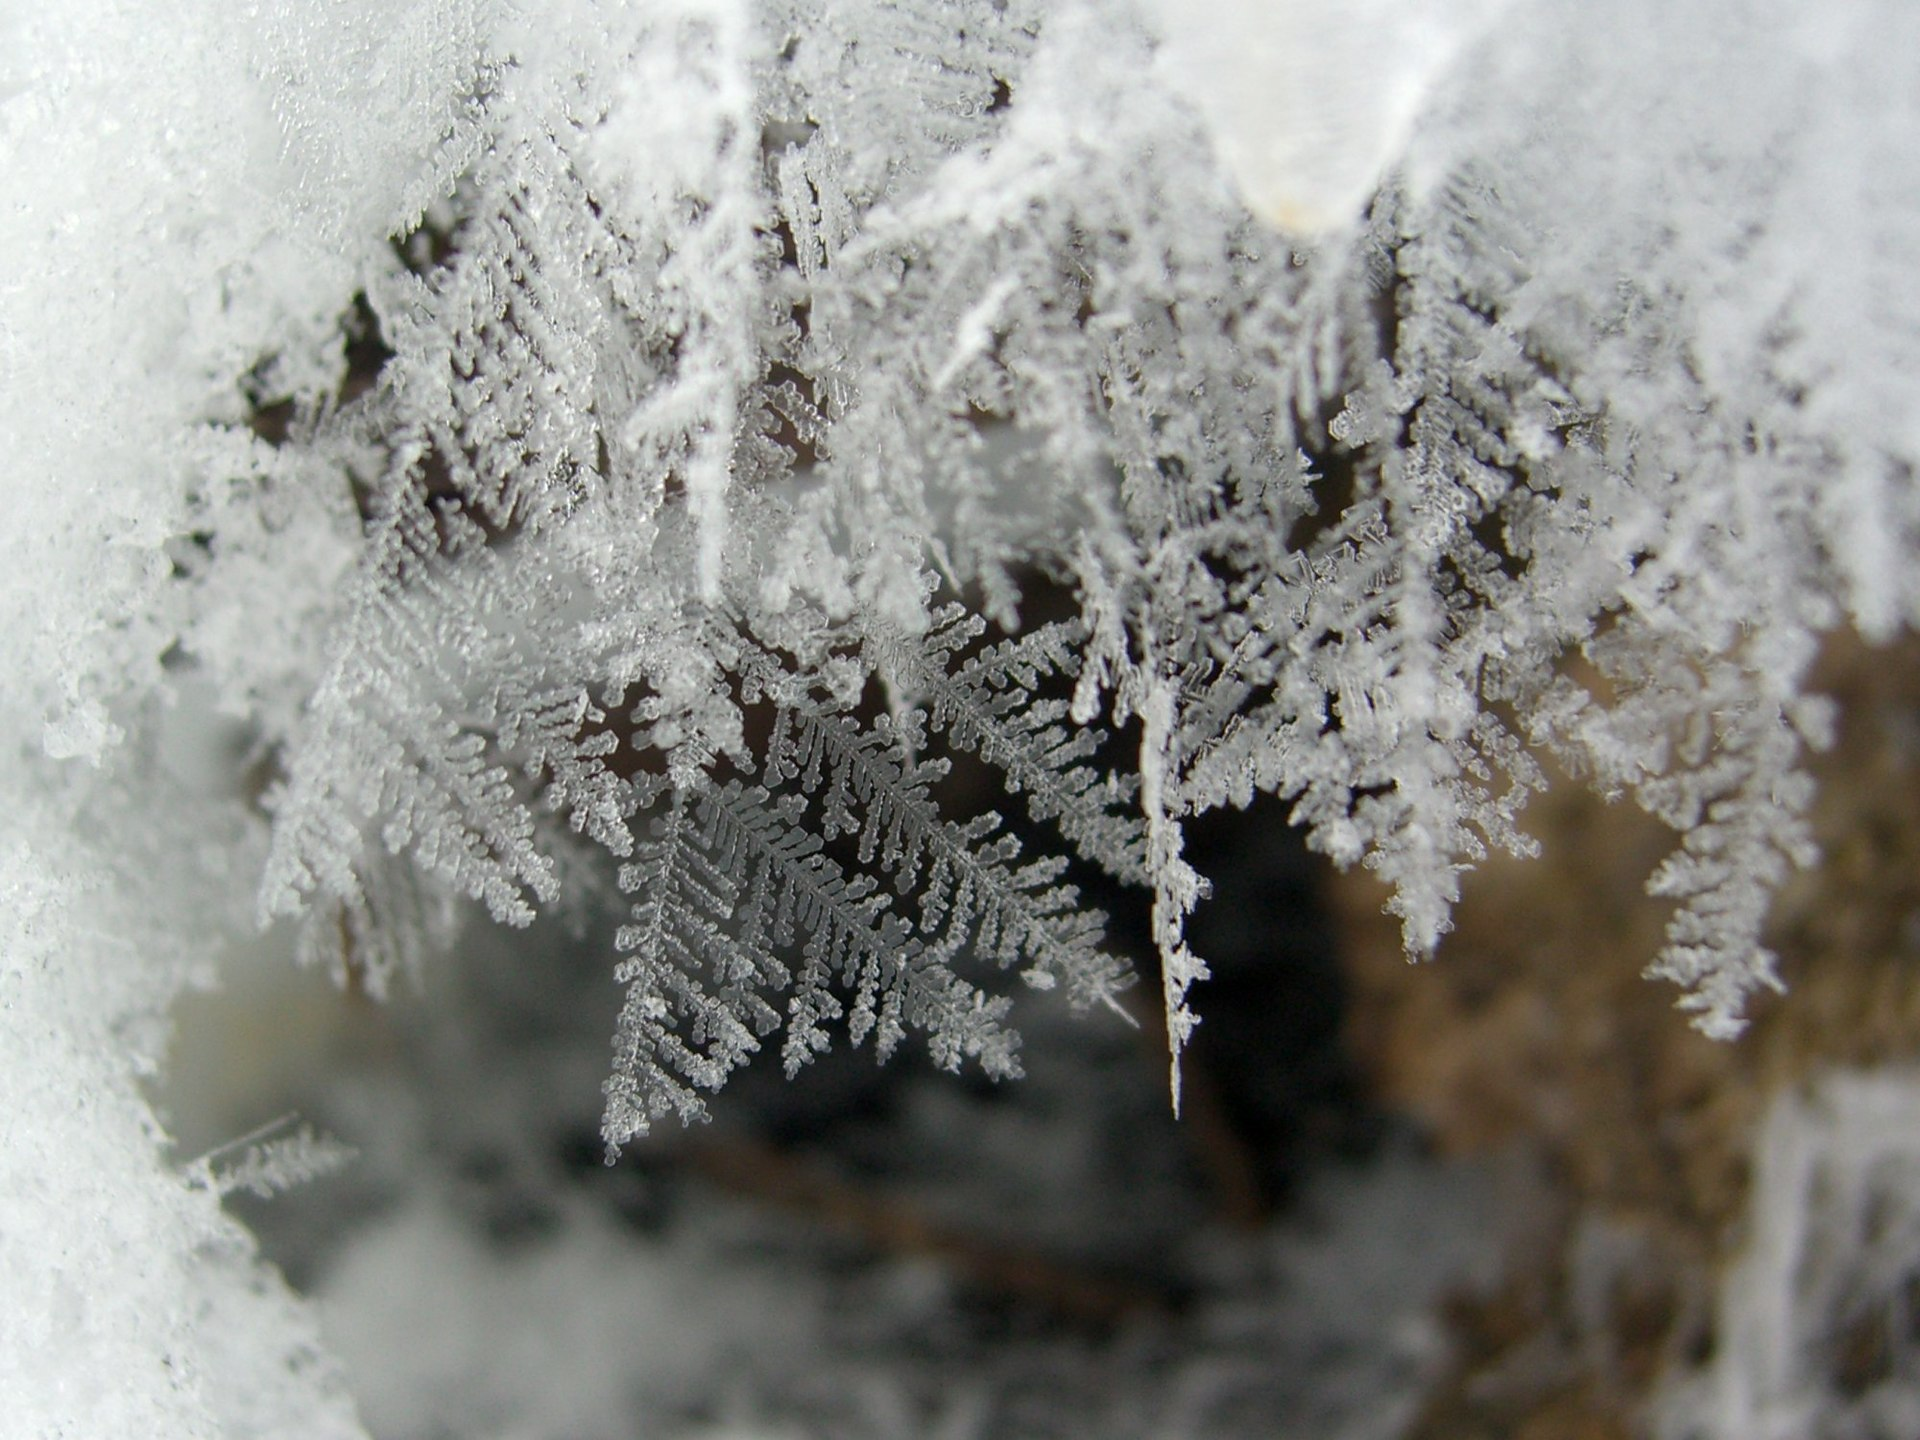 1920px-Feathery_Snow_Crystals_(2217830221)